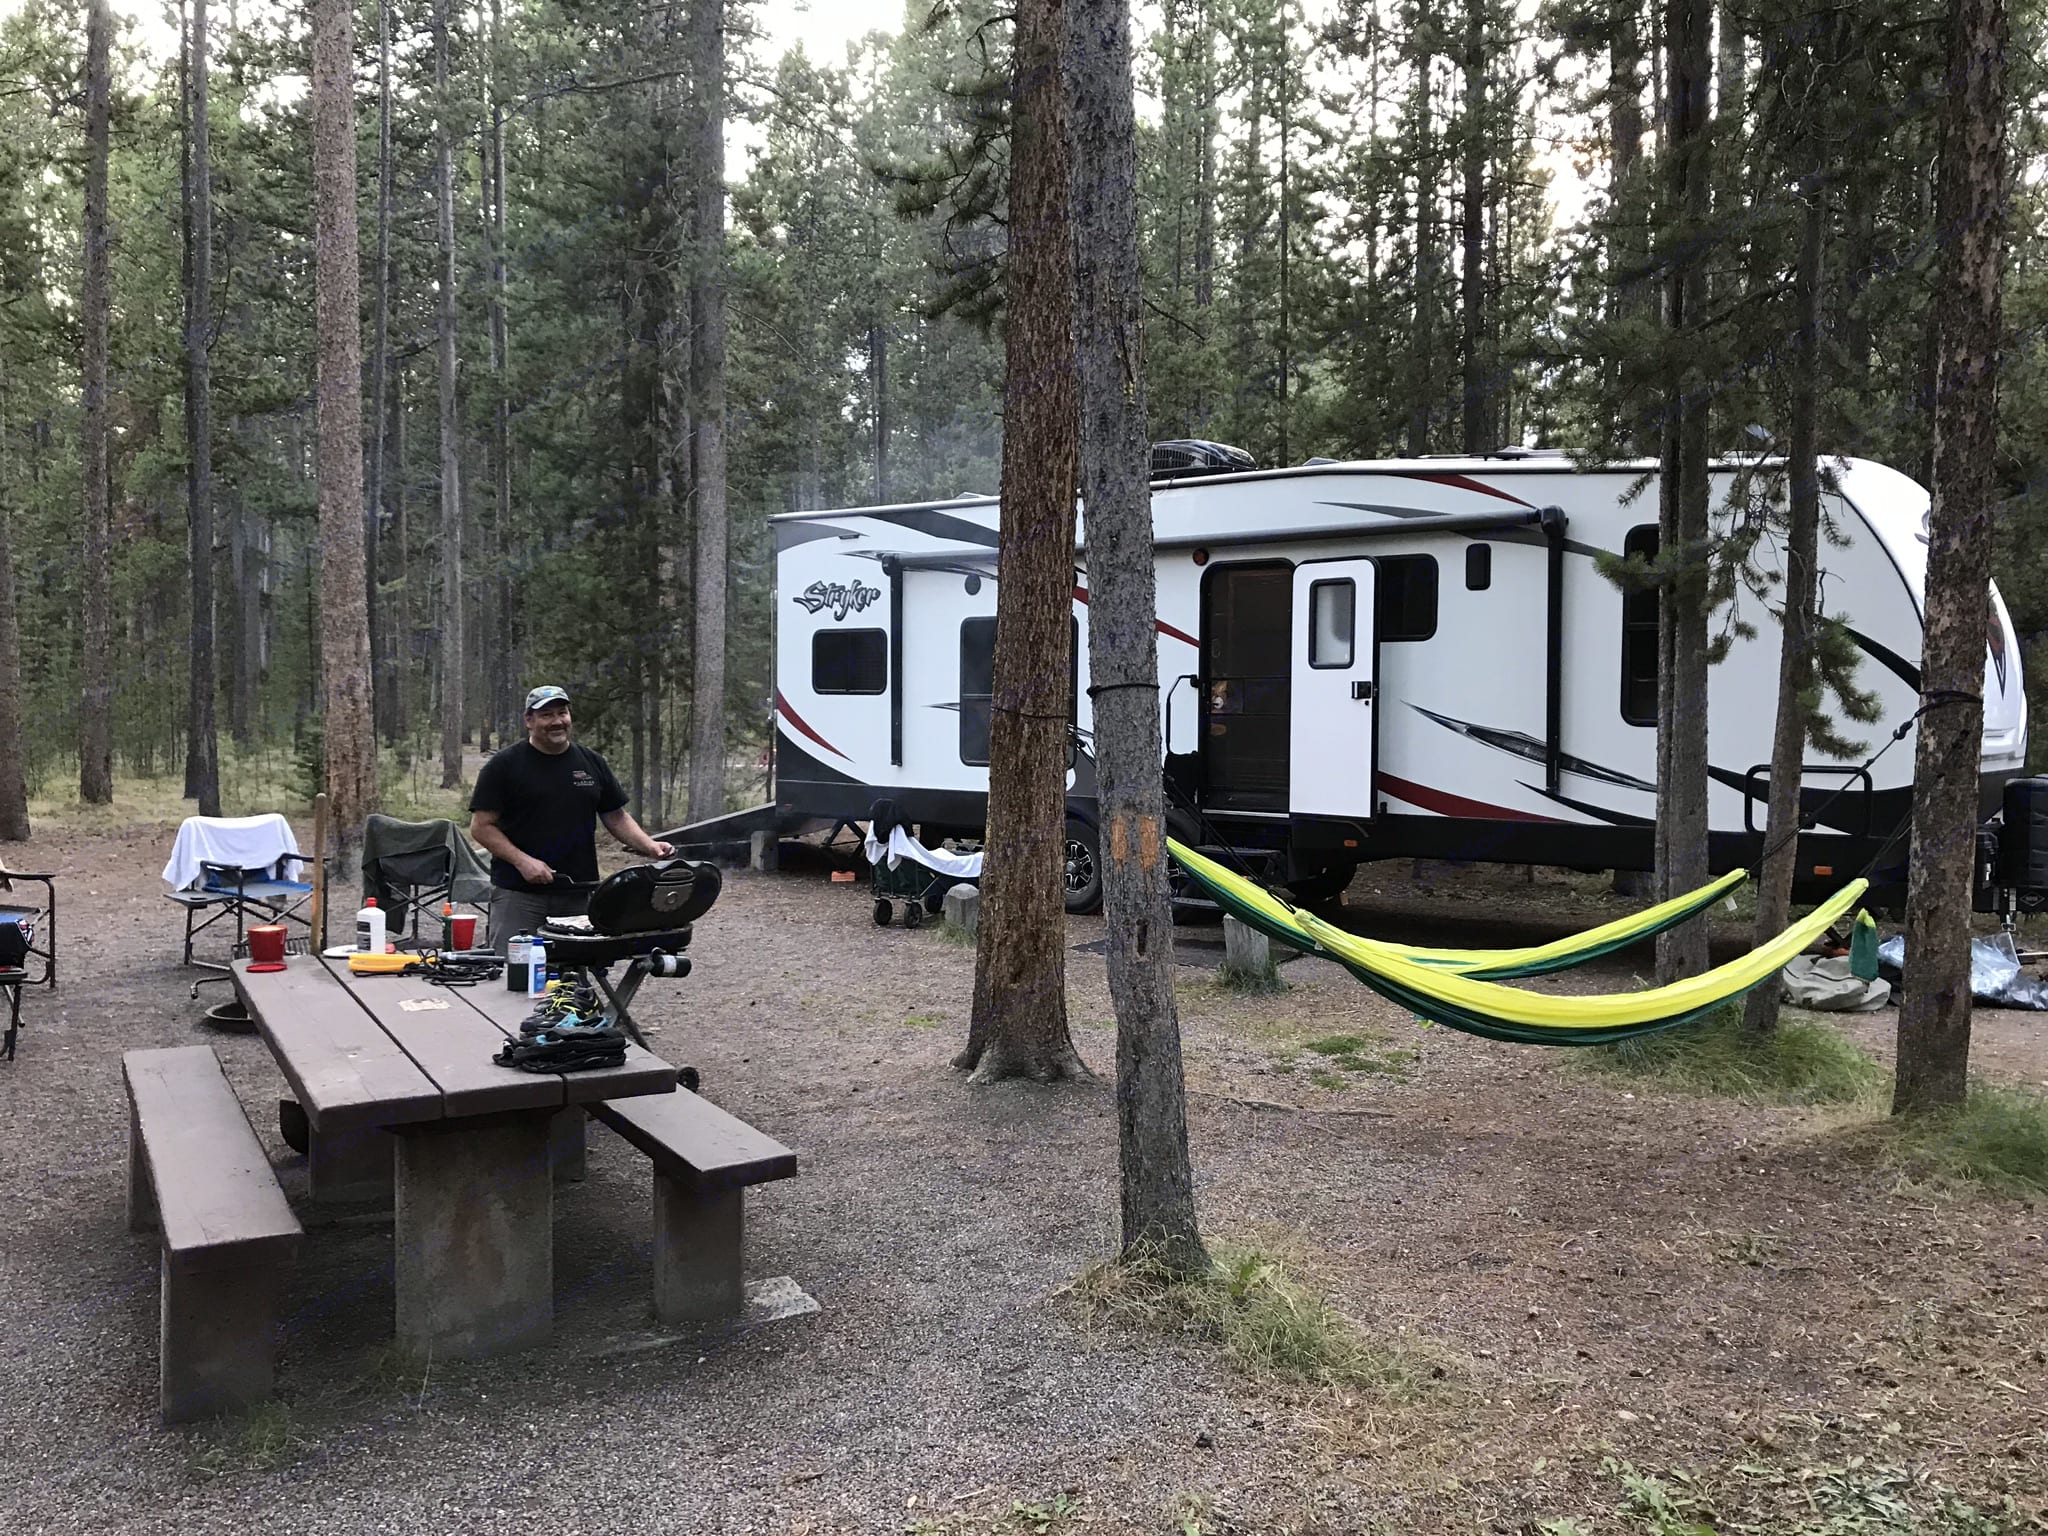 Find a state campground and enjoy rough camping. Cruiser Rv Corp Stryker 2016